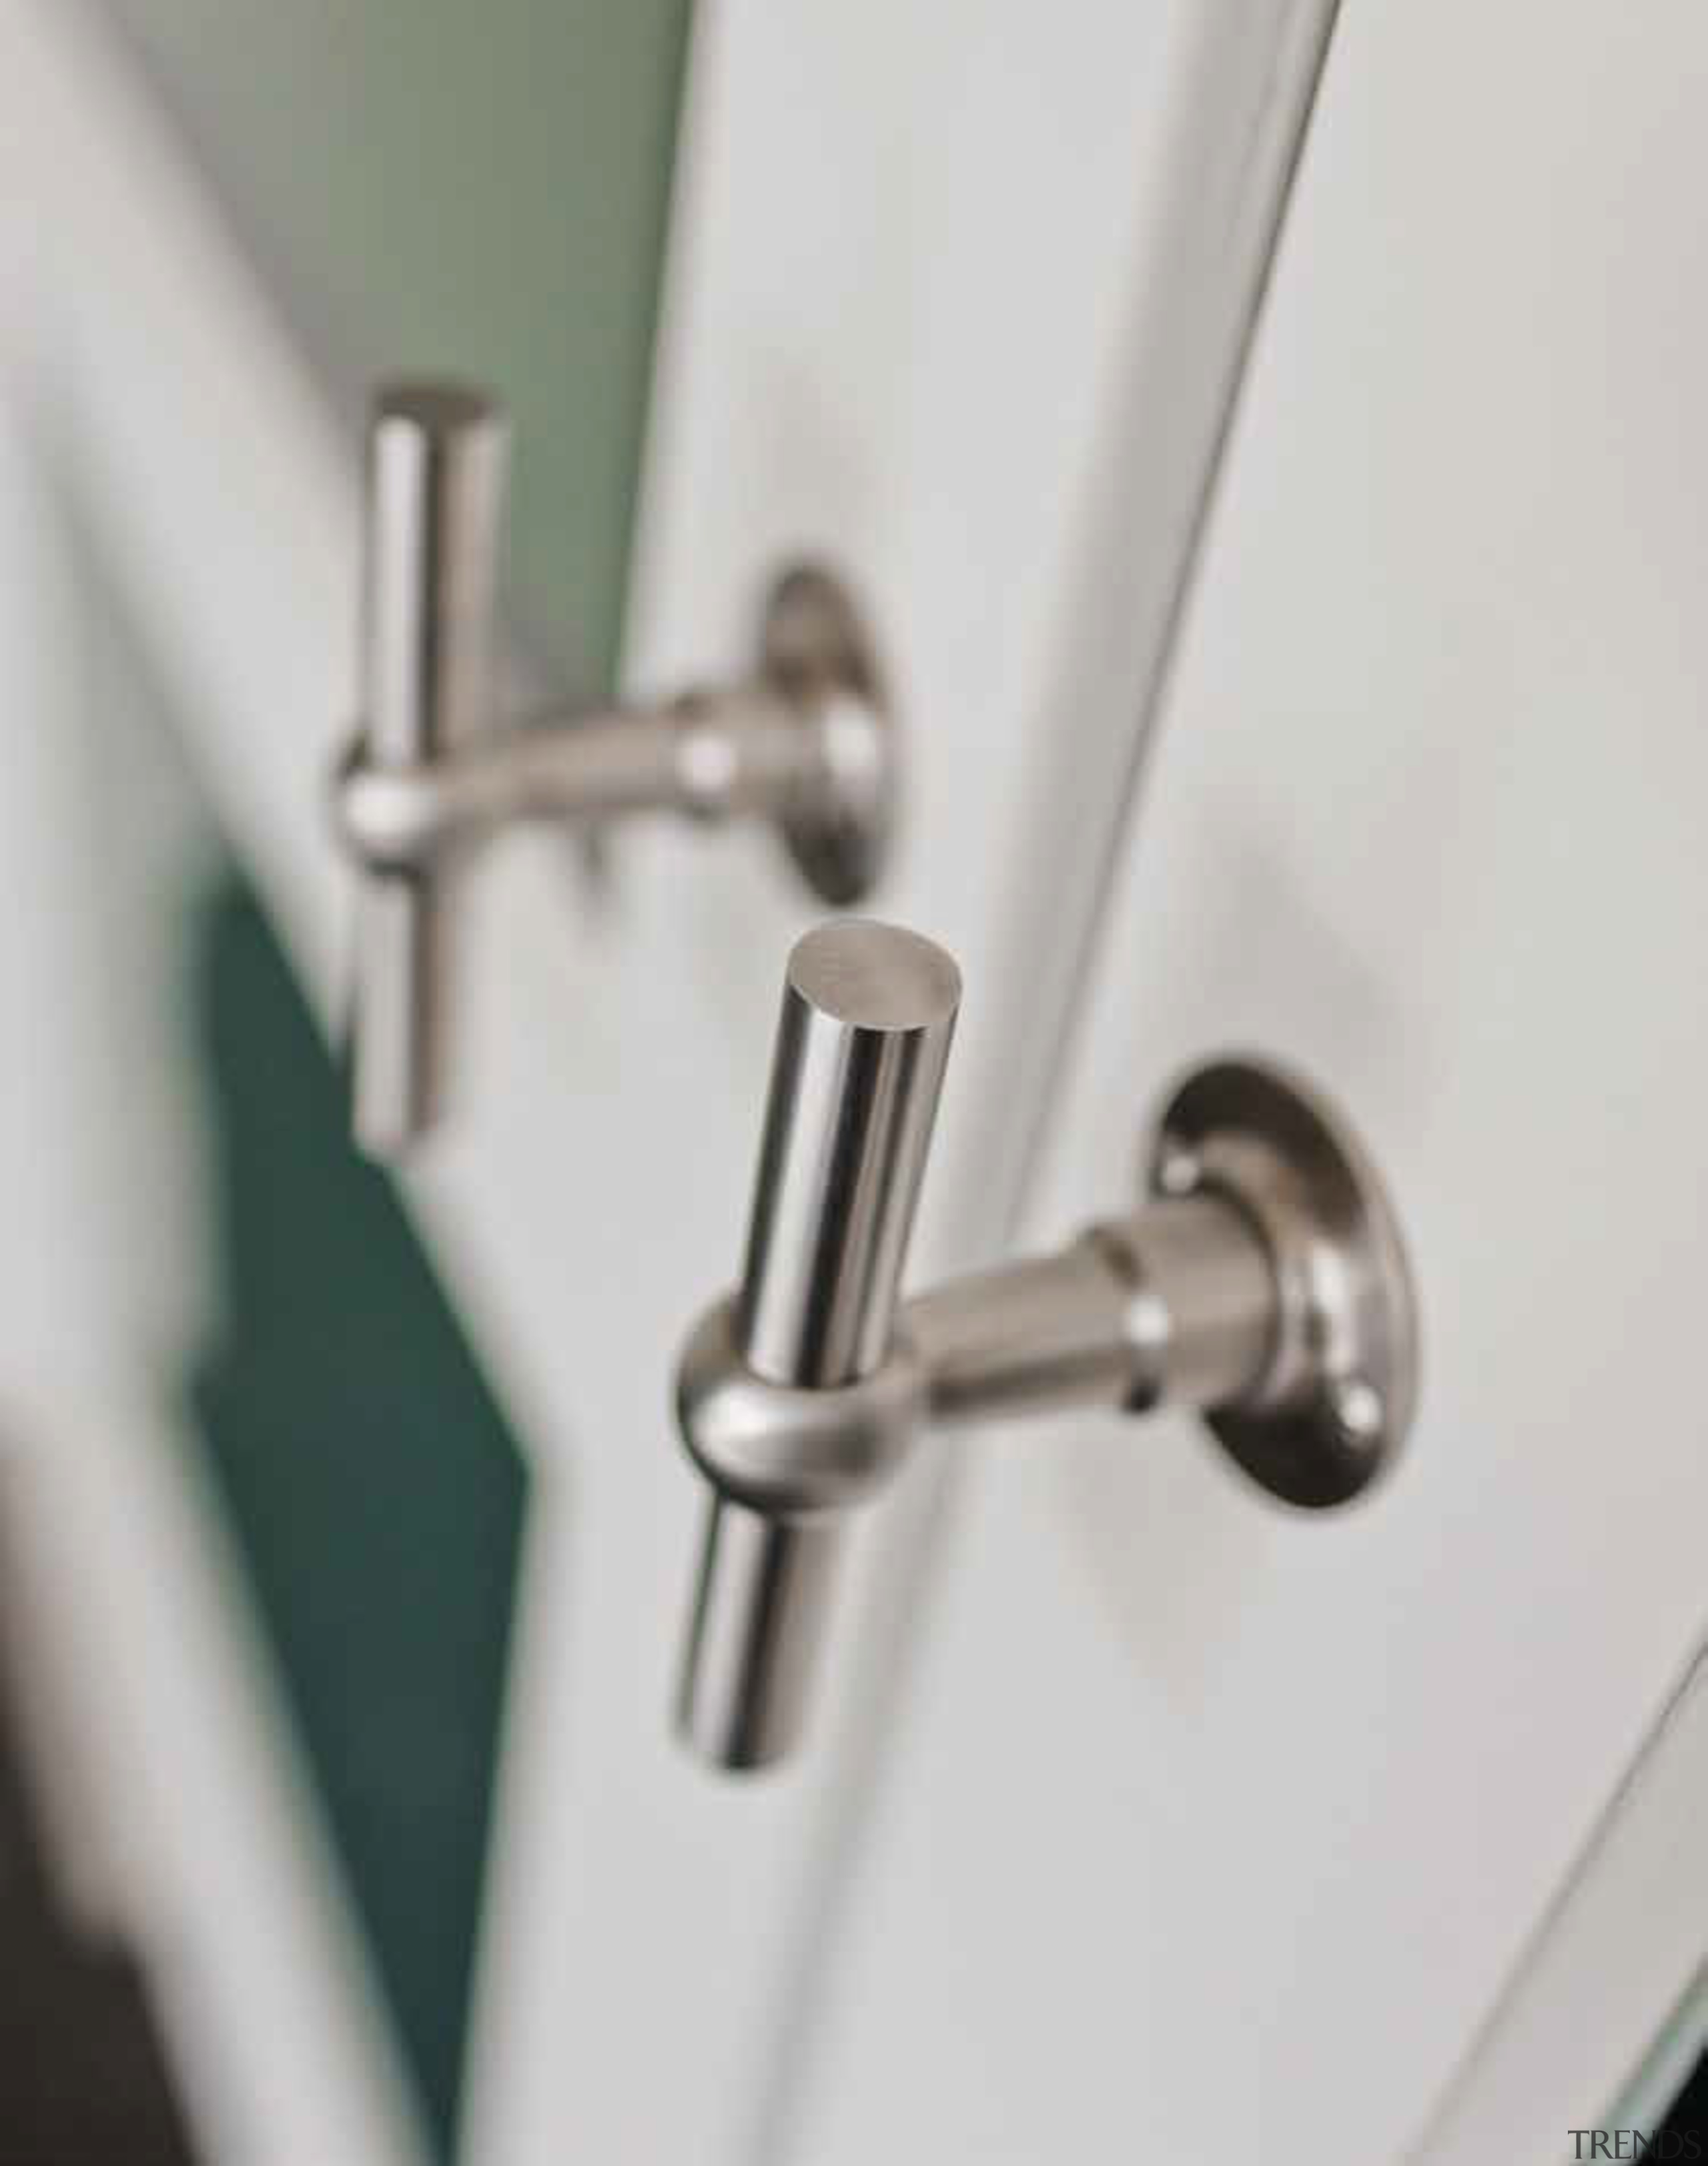 FVT110/52 - Solid Unsprung Lever Handle Attached to plumbing fixture, product design, tap, gray